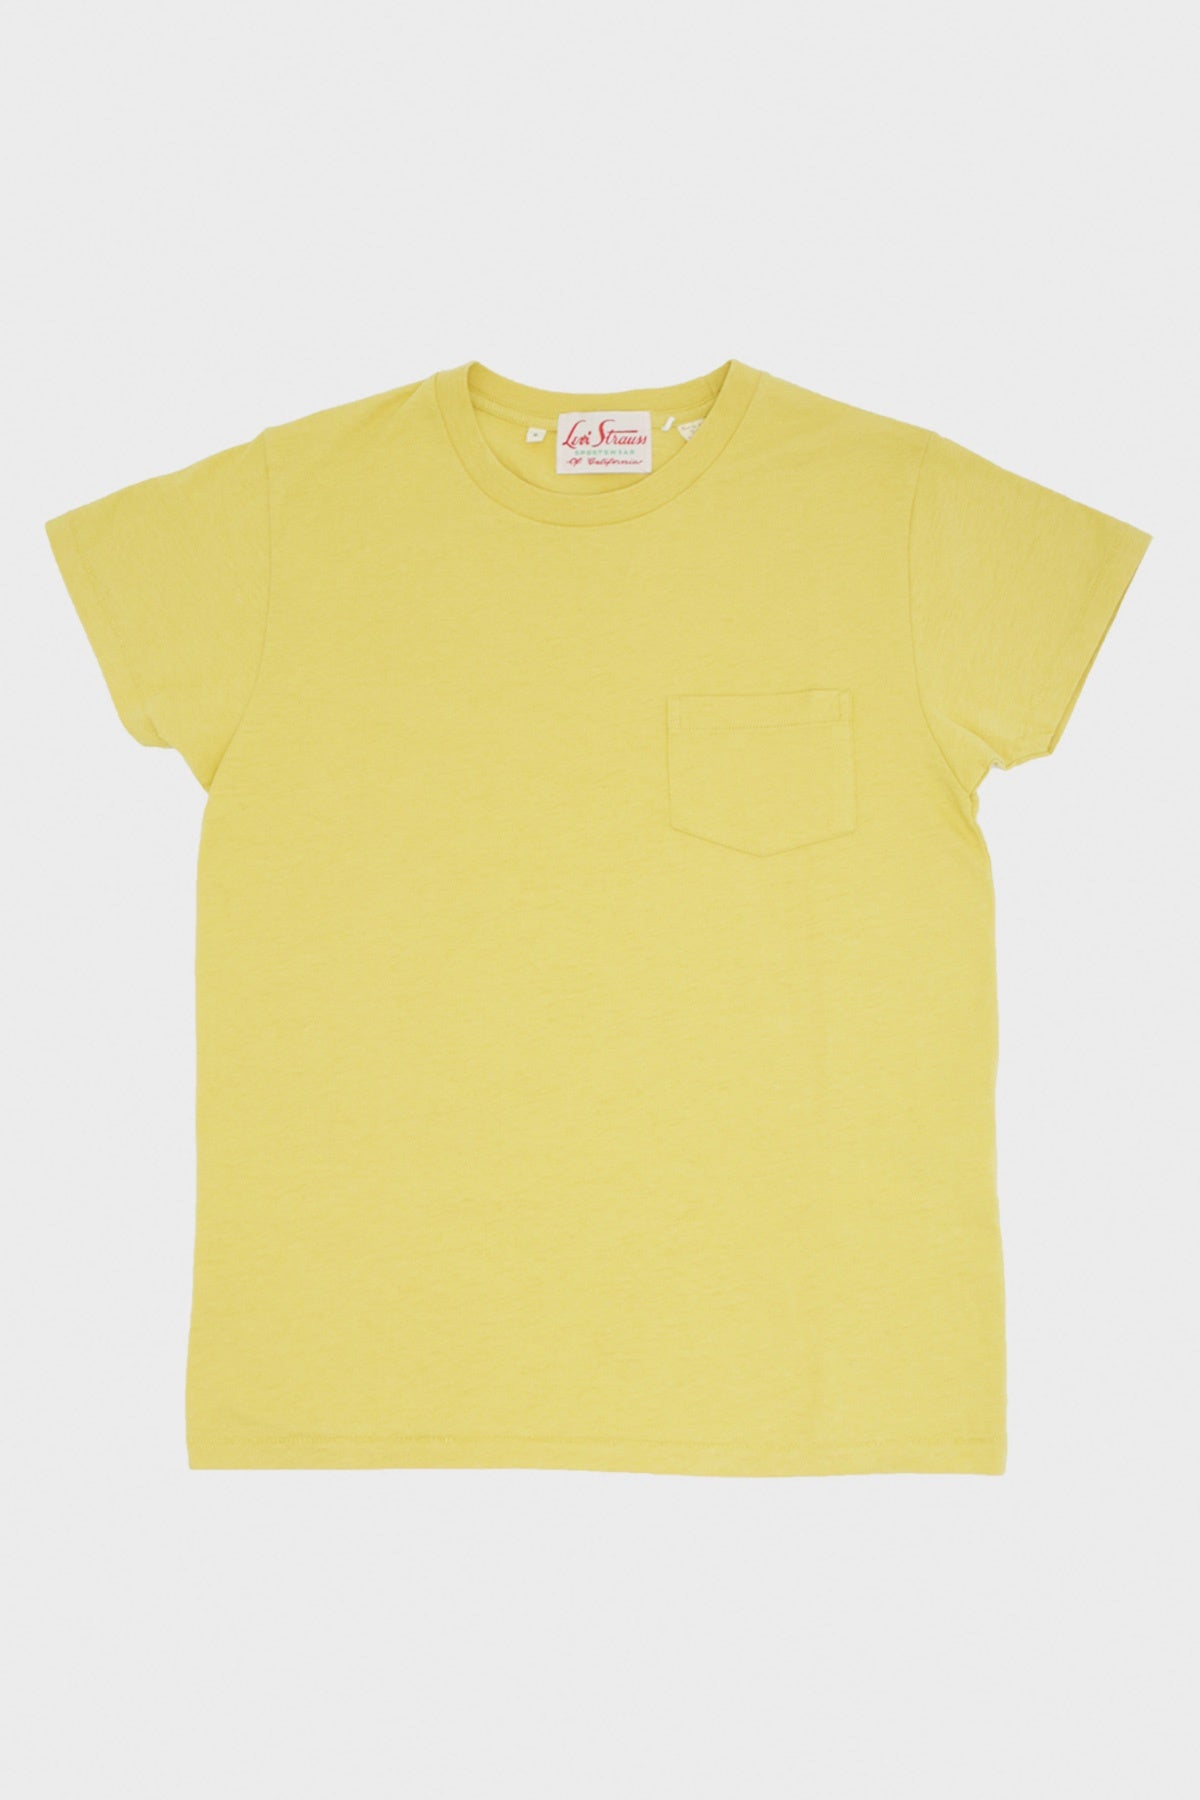 Levi's Vintage Clothing - 1950s Sportswear Tee - Misted Yellow - Canoe Club